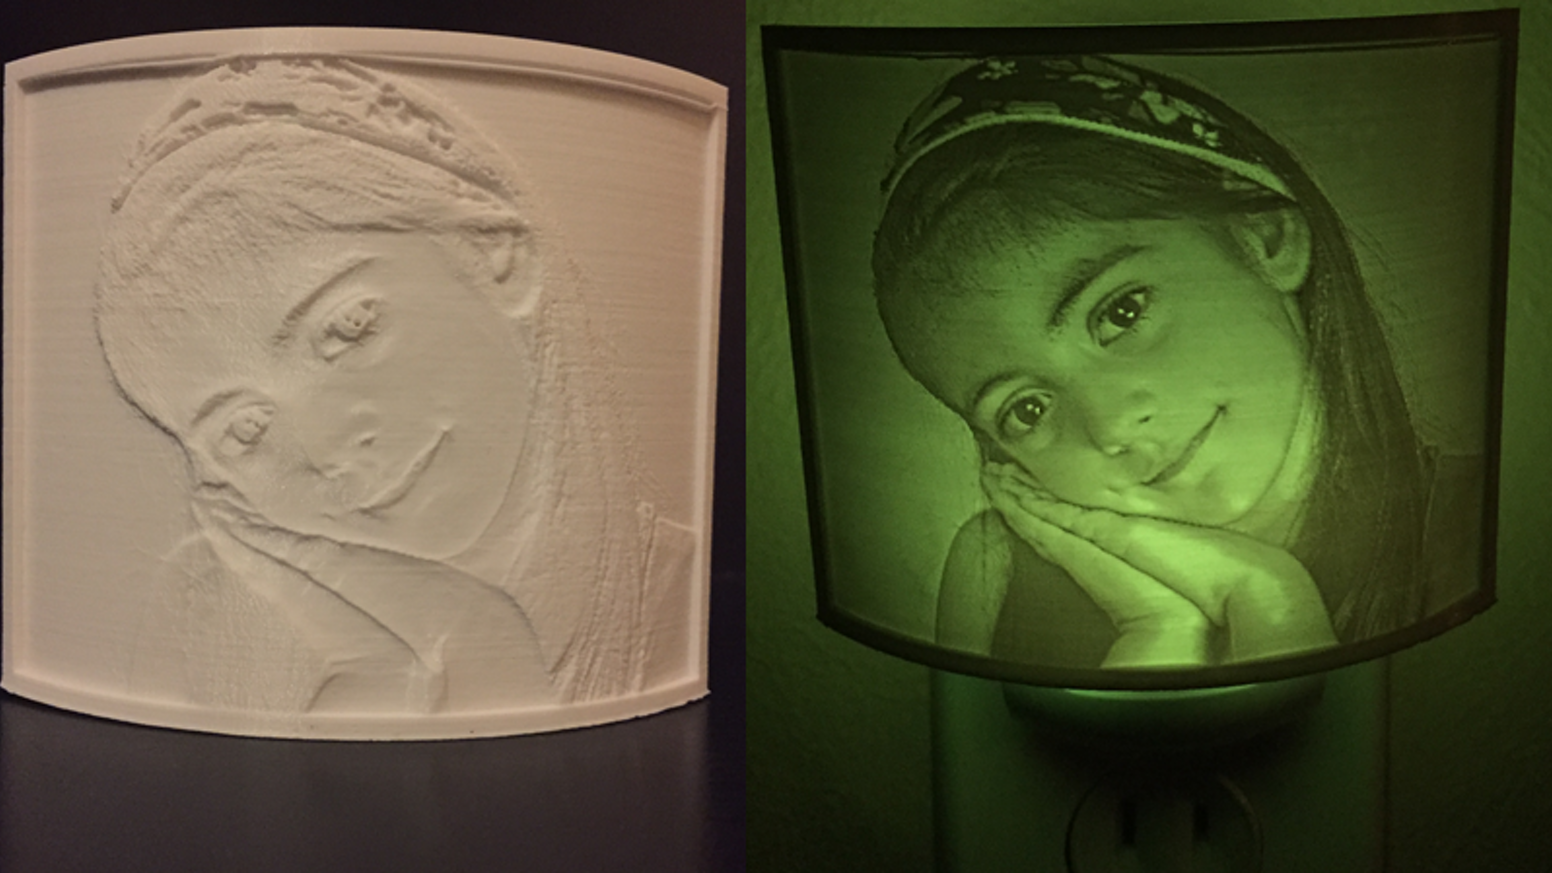 Photo 3D printing, a new way of personal customization by 3D ...